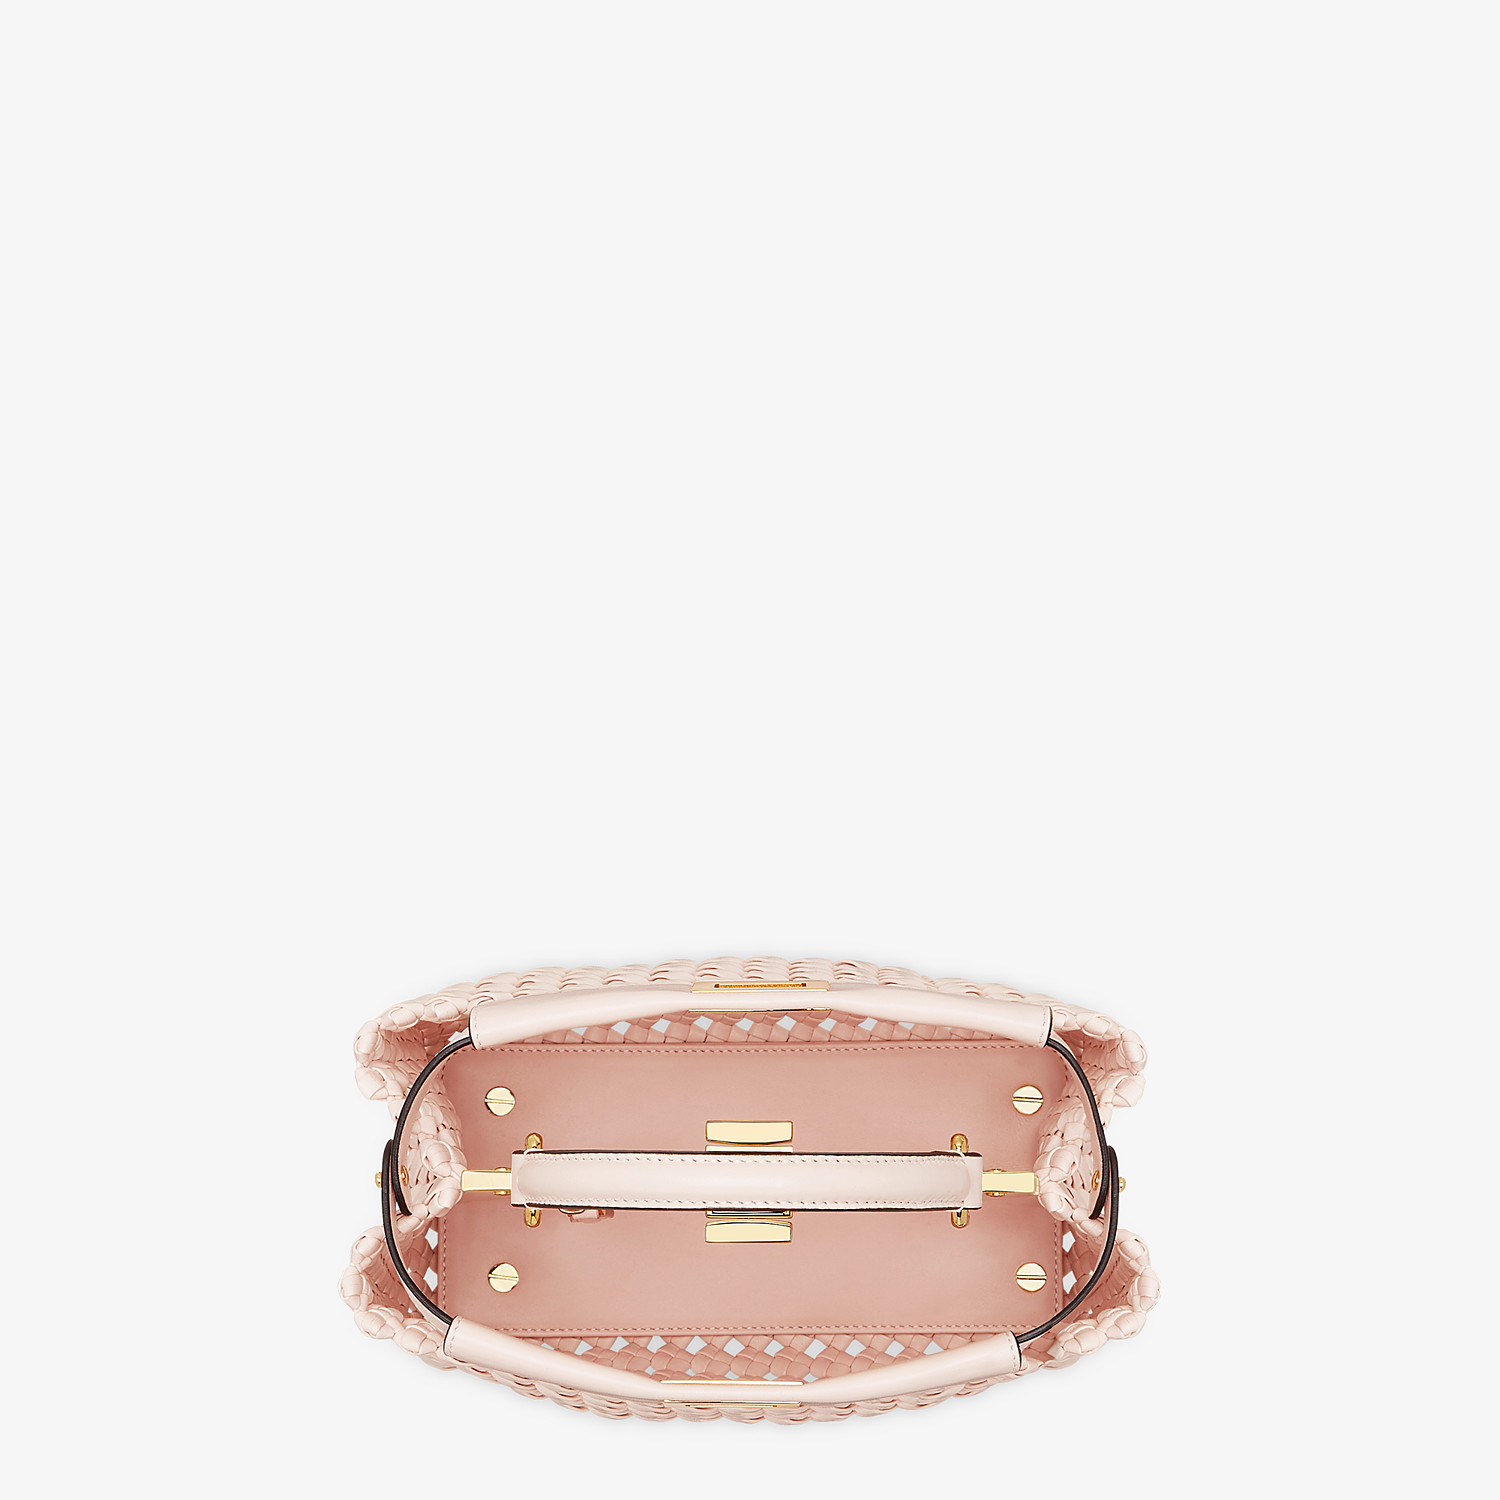 FENDI PEEKABOO ICONIC MINI - Tasche aus Interlace Leder in Rosa - view 5 detail